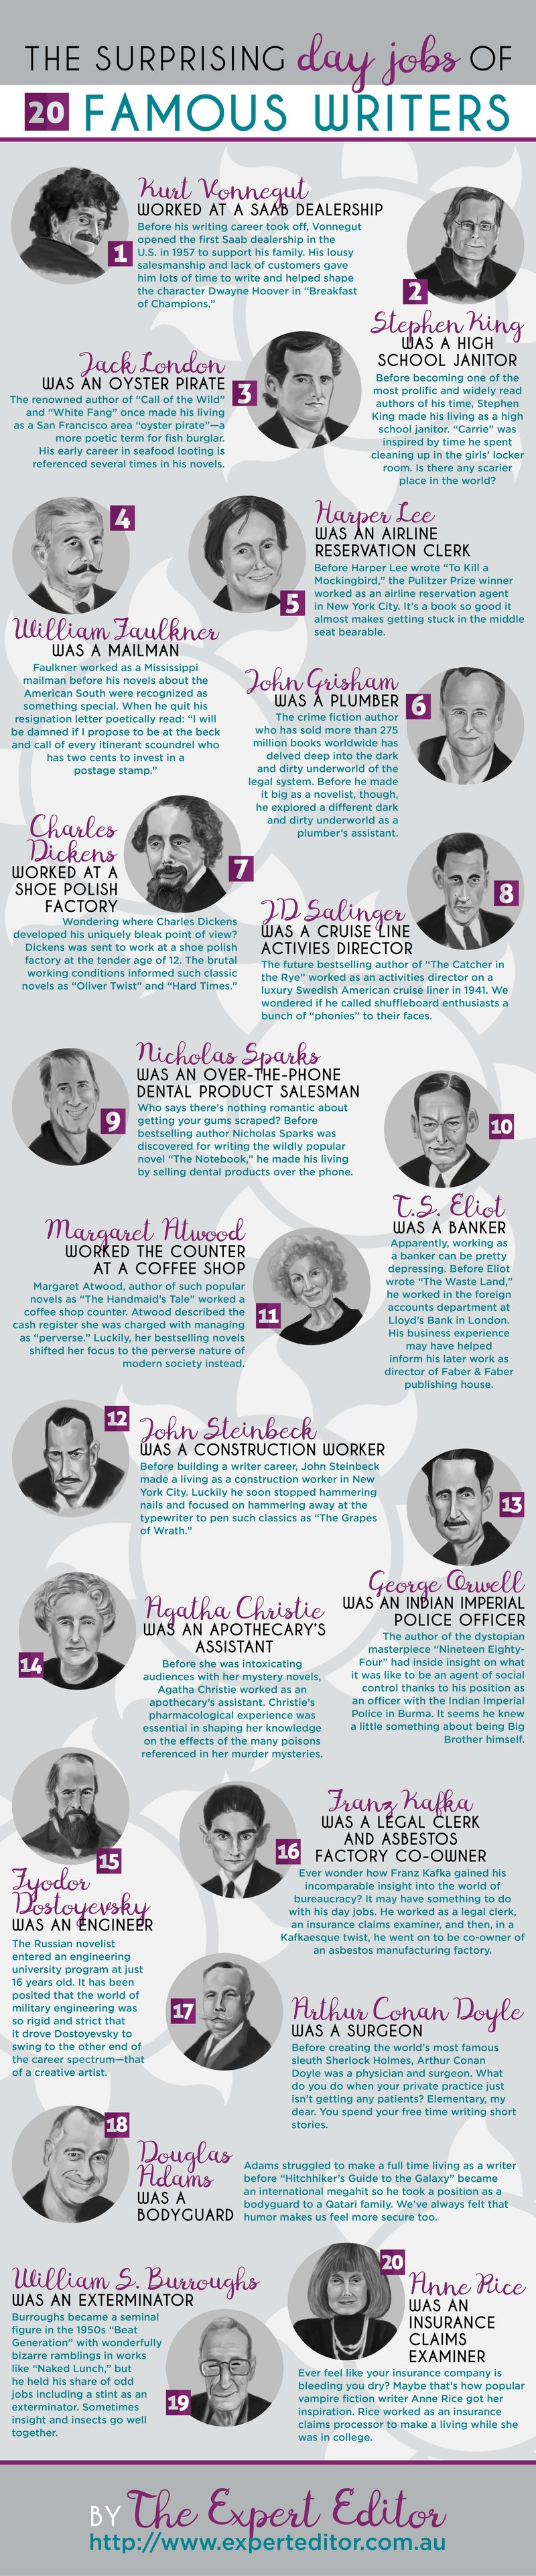 Surprising-day-jobs-of-writers-infographic